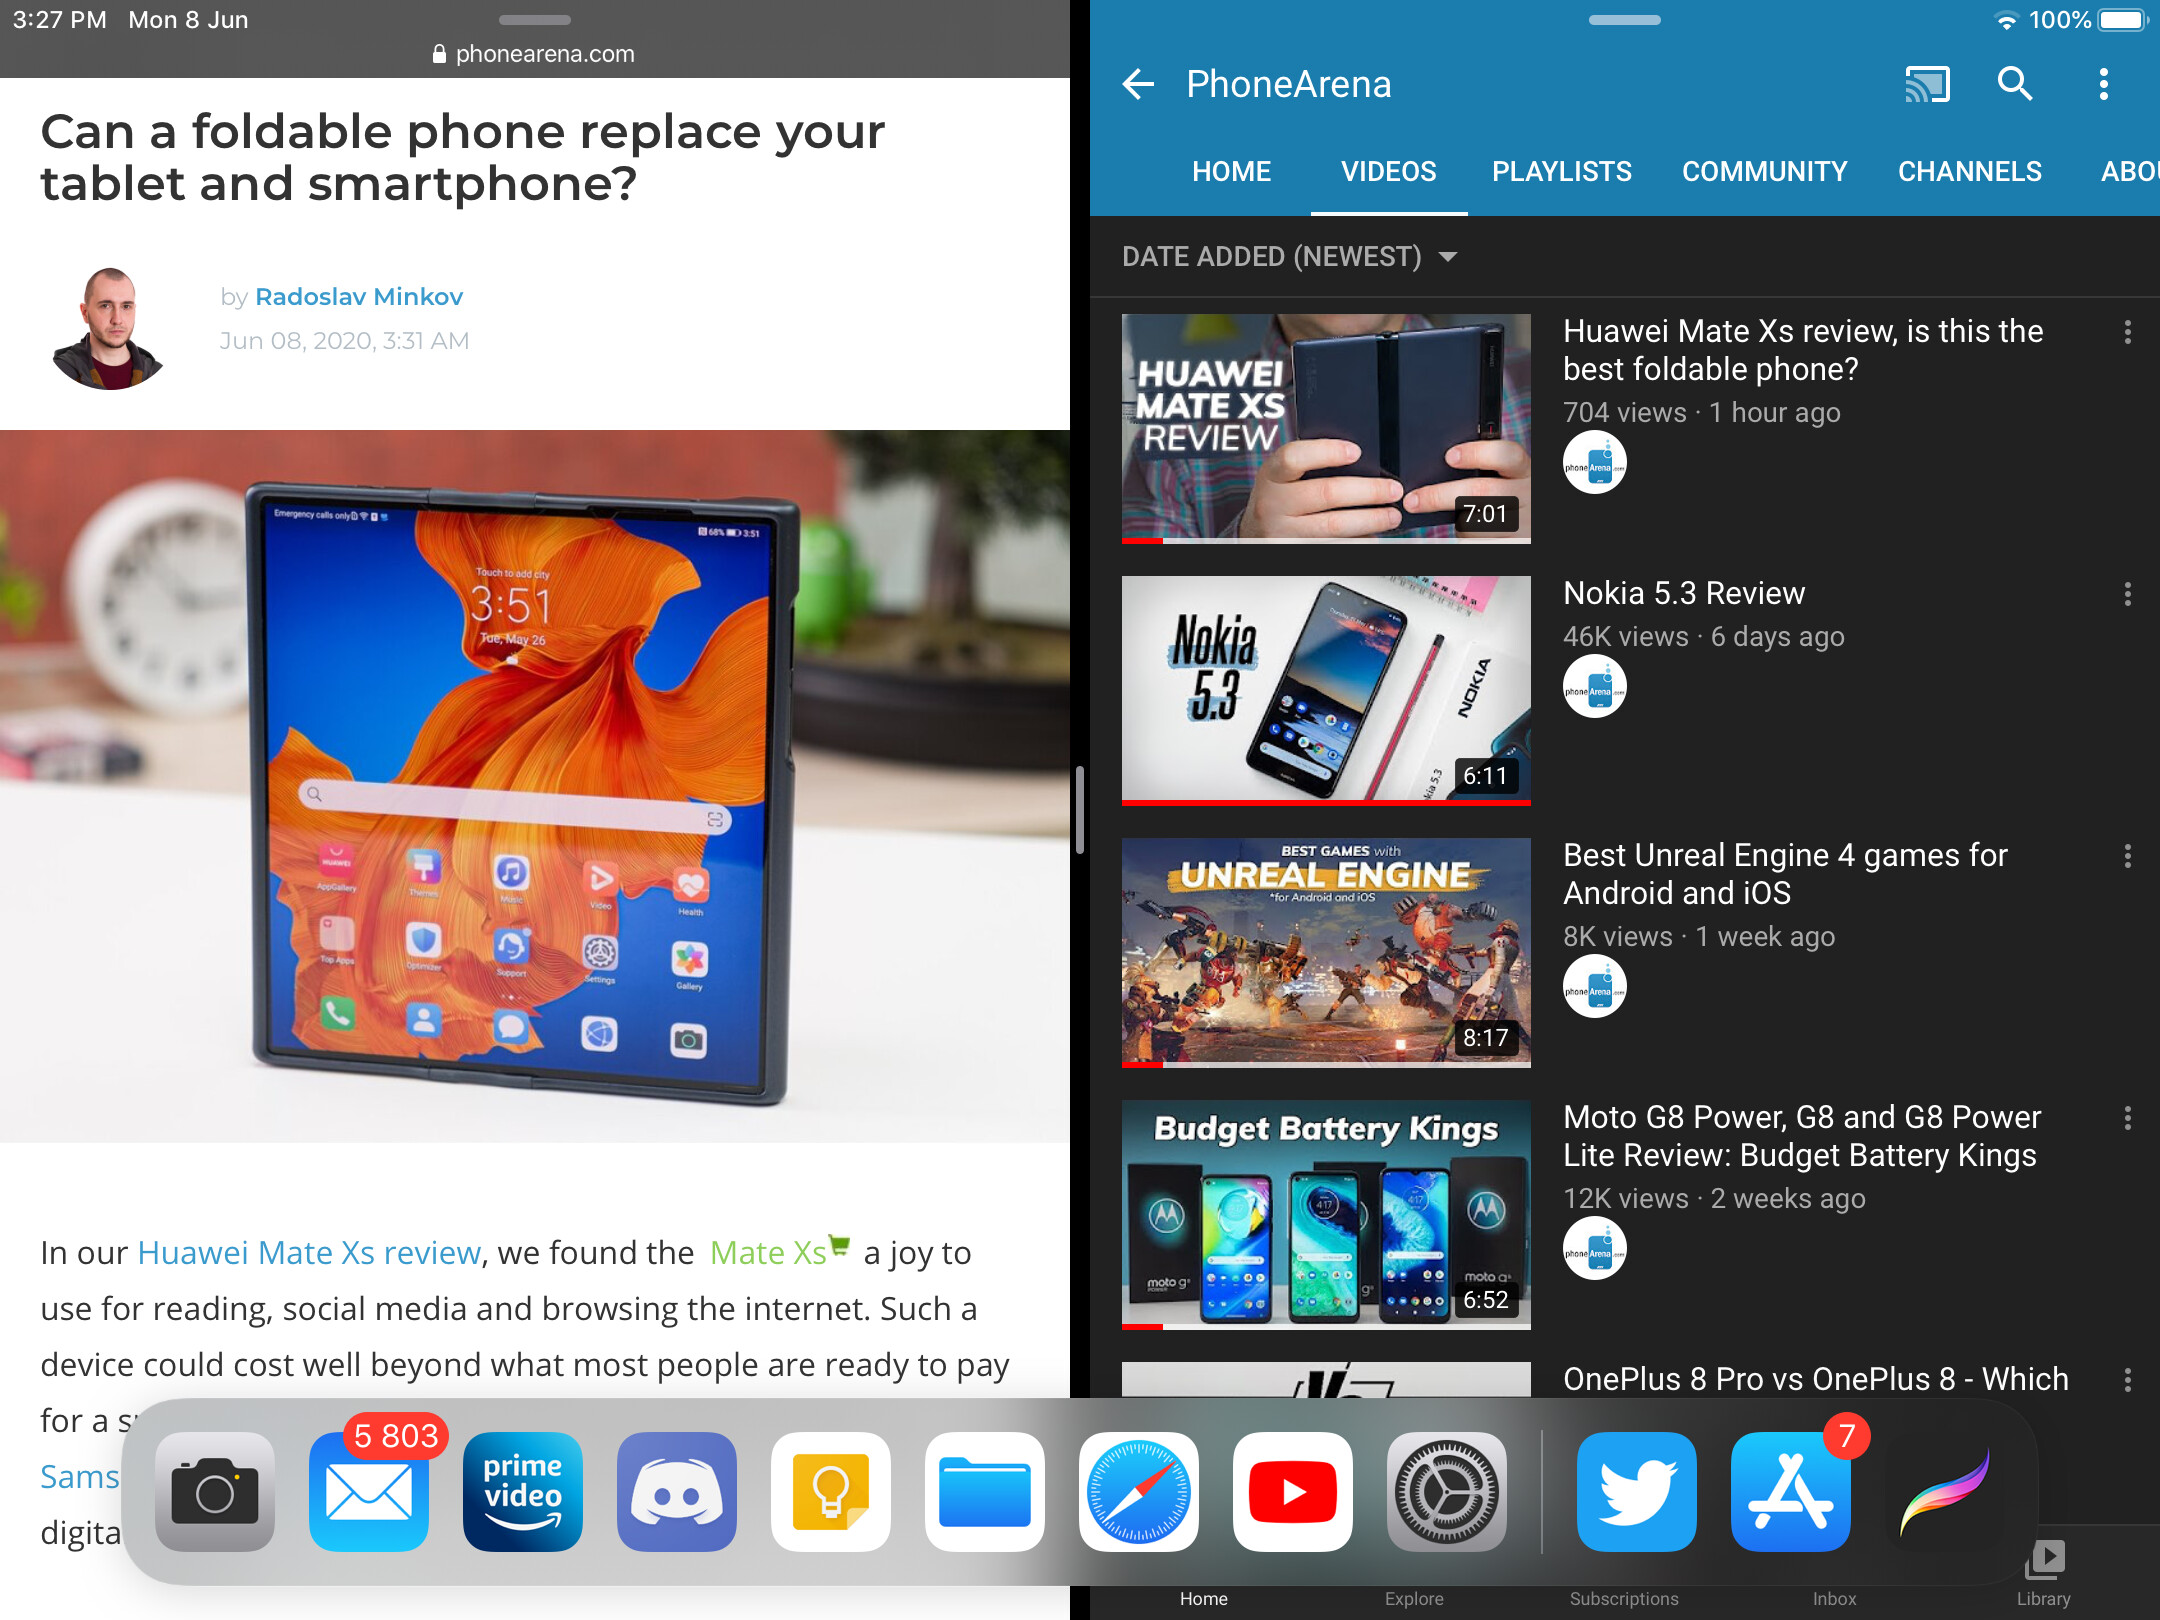 Multitasking on the iPad looks similar to how it is on Android, but functionally it's worse. - This is what iPadOS needs before the iPad can truly replace a computer